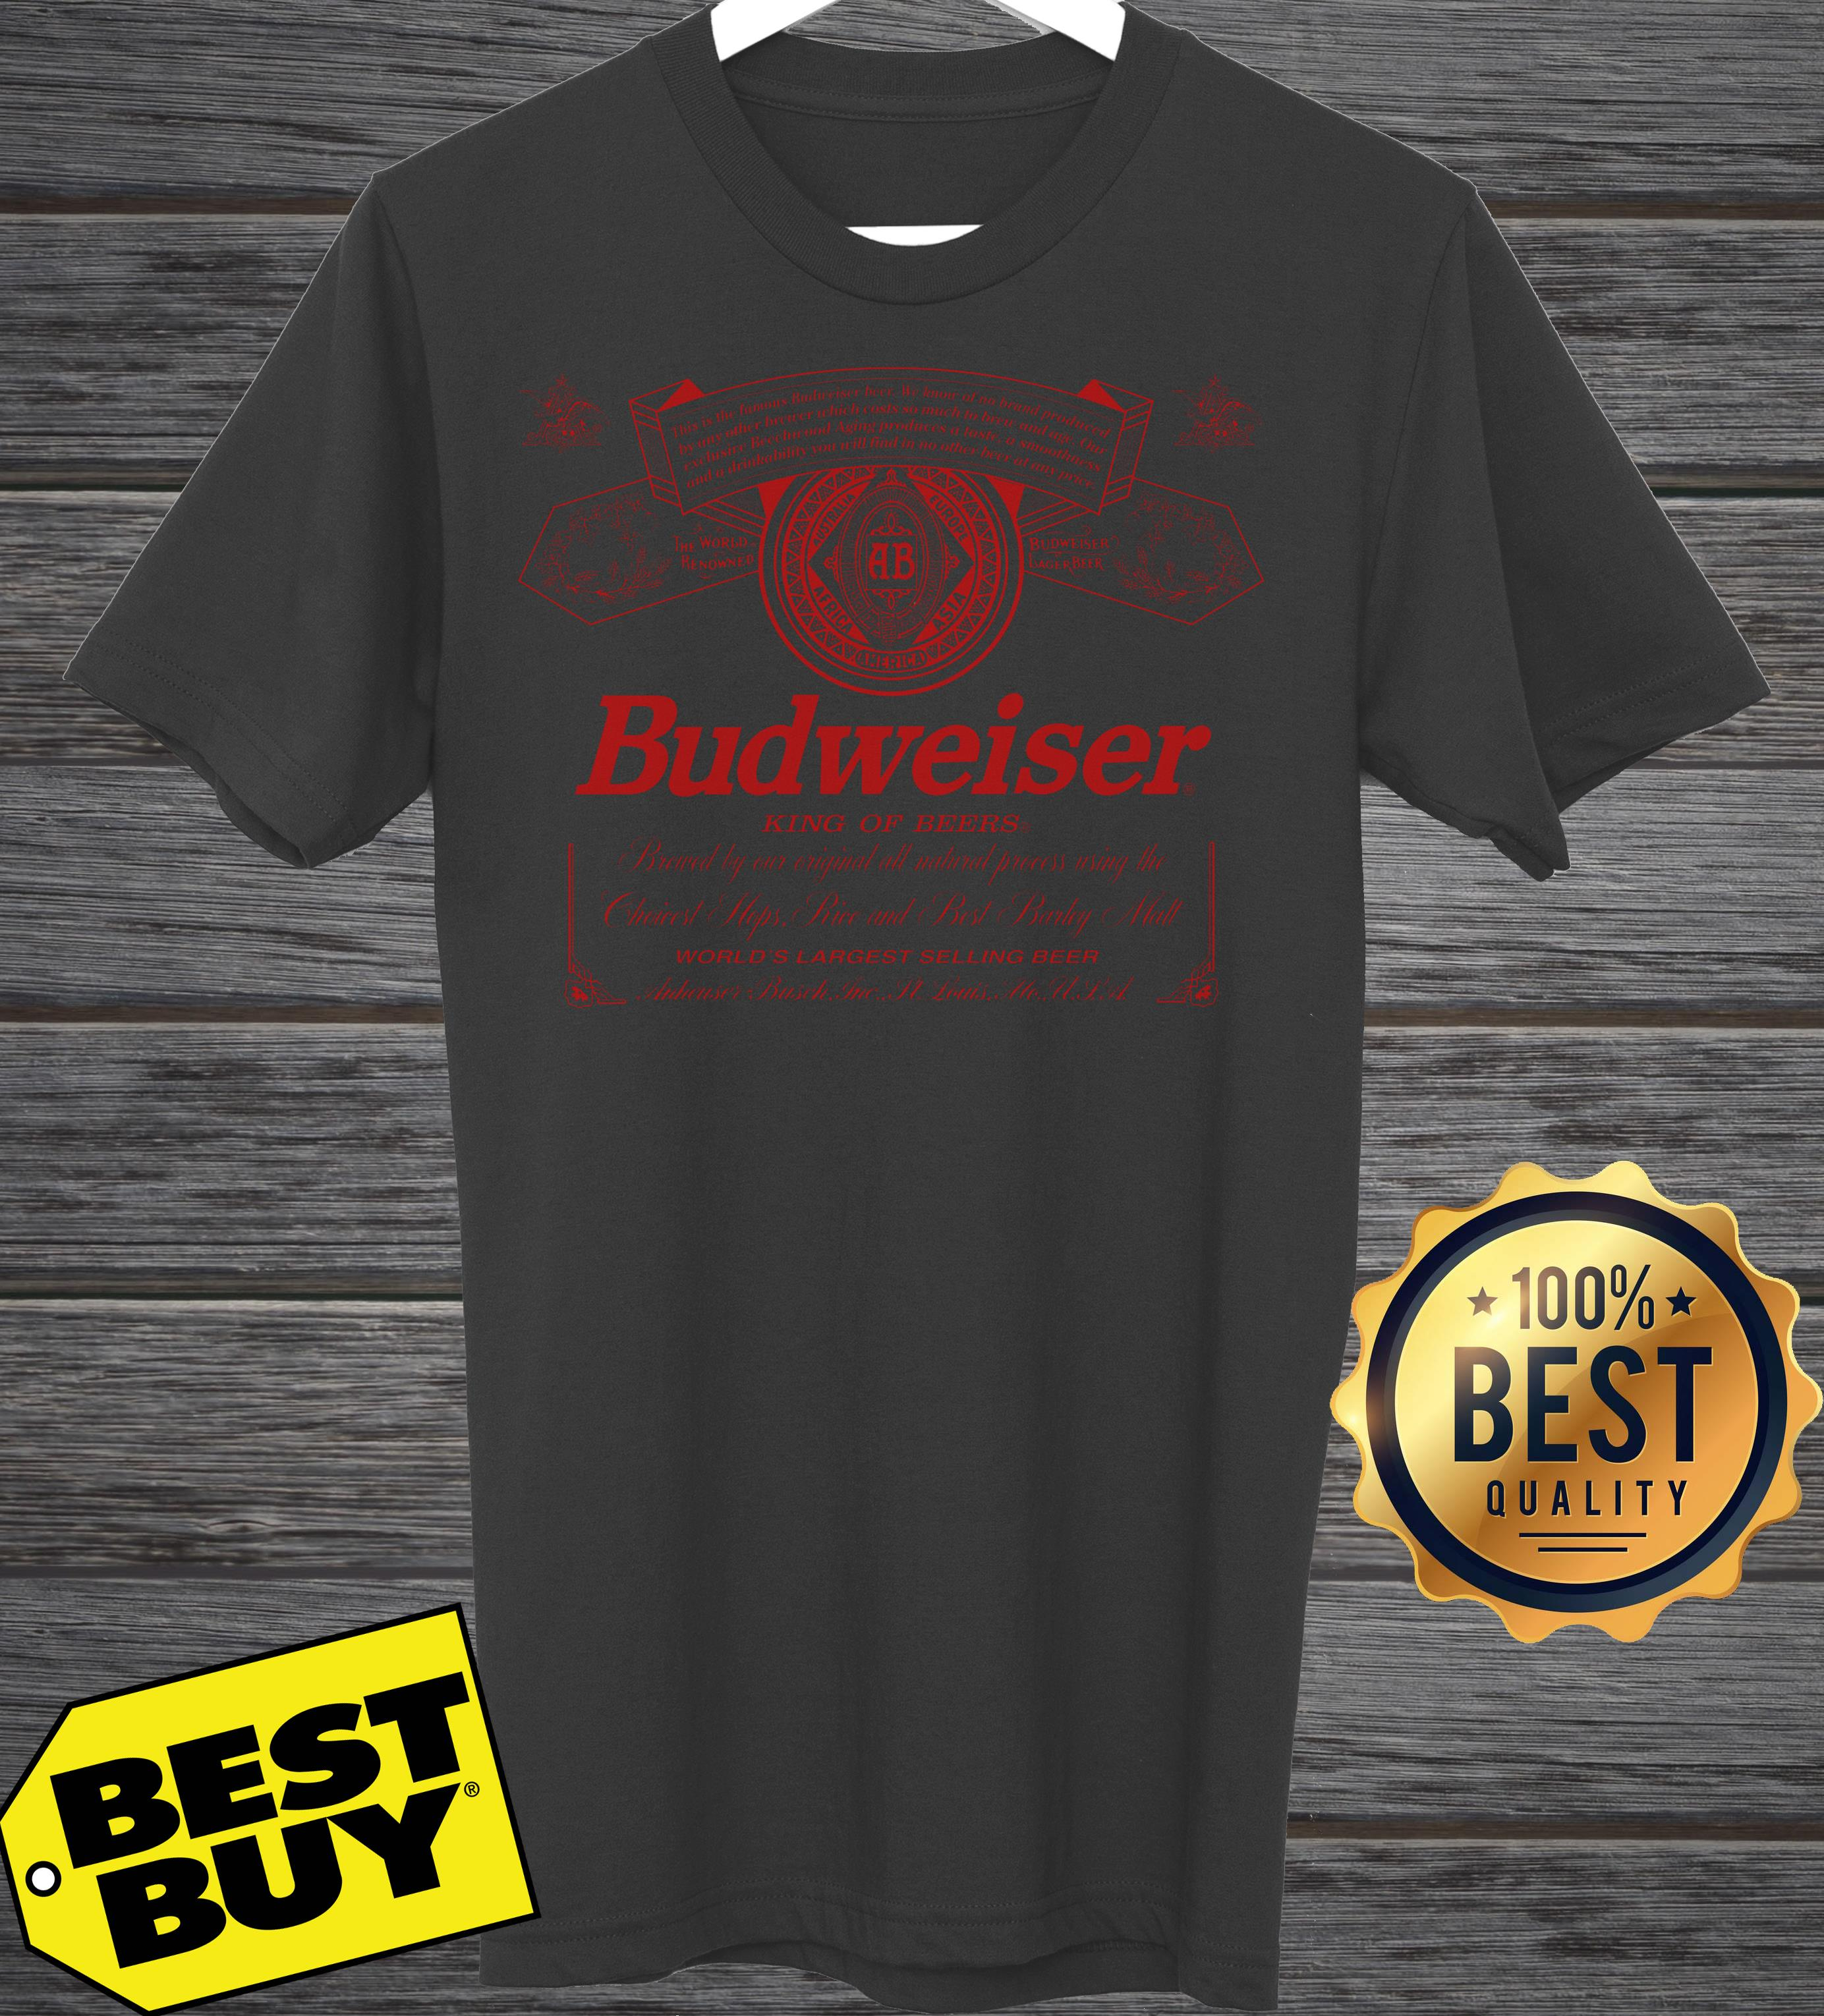 Official Budweiser King of beer unisex